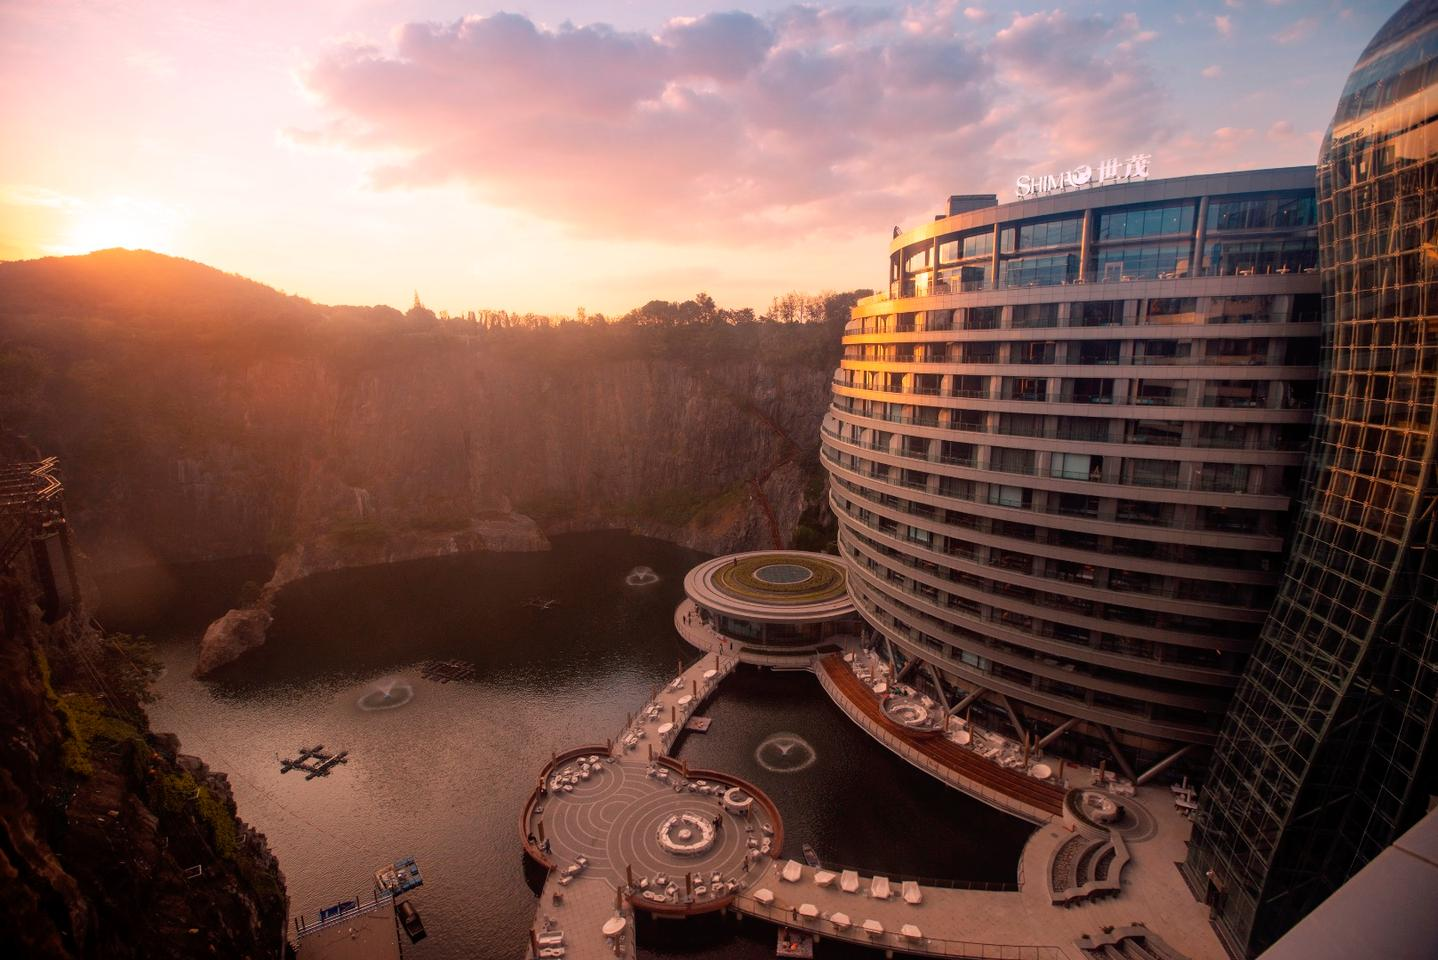 The Shimao Wonderland Intercontinental Hotel is located in Songjiang , Shanghai, China